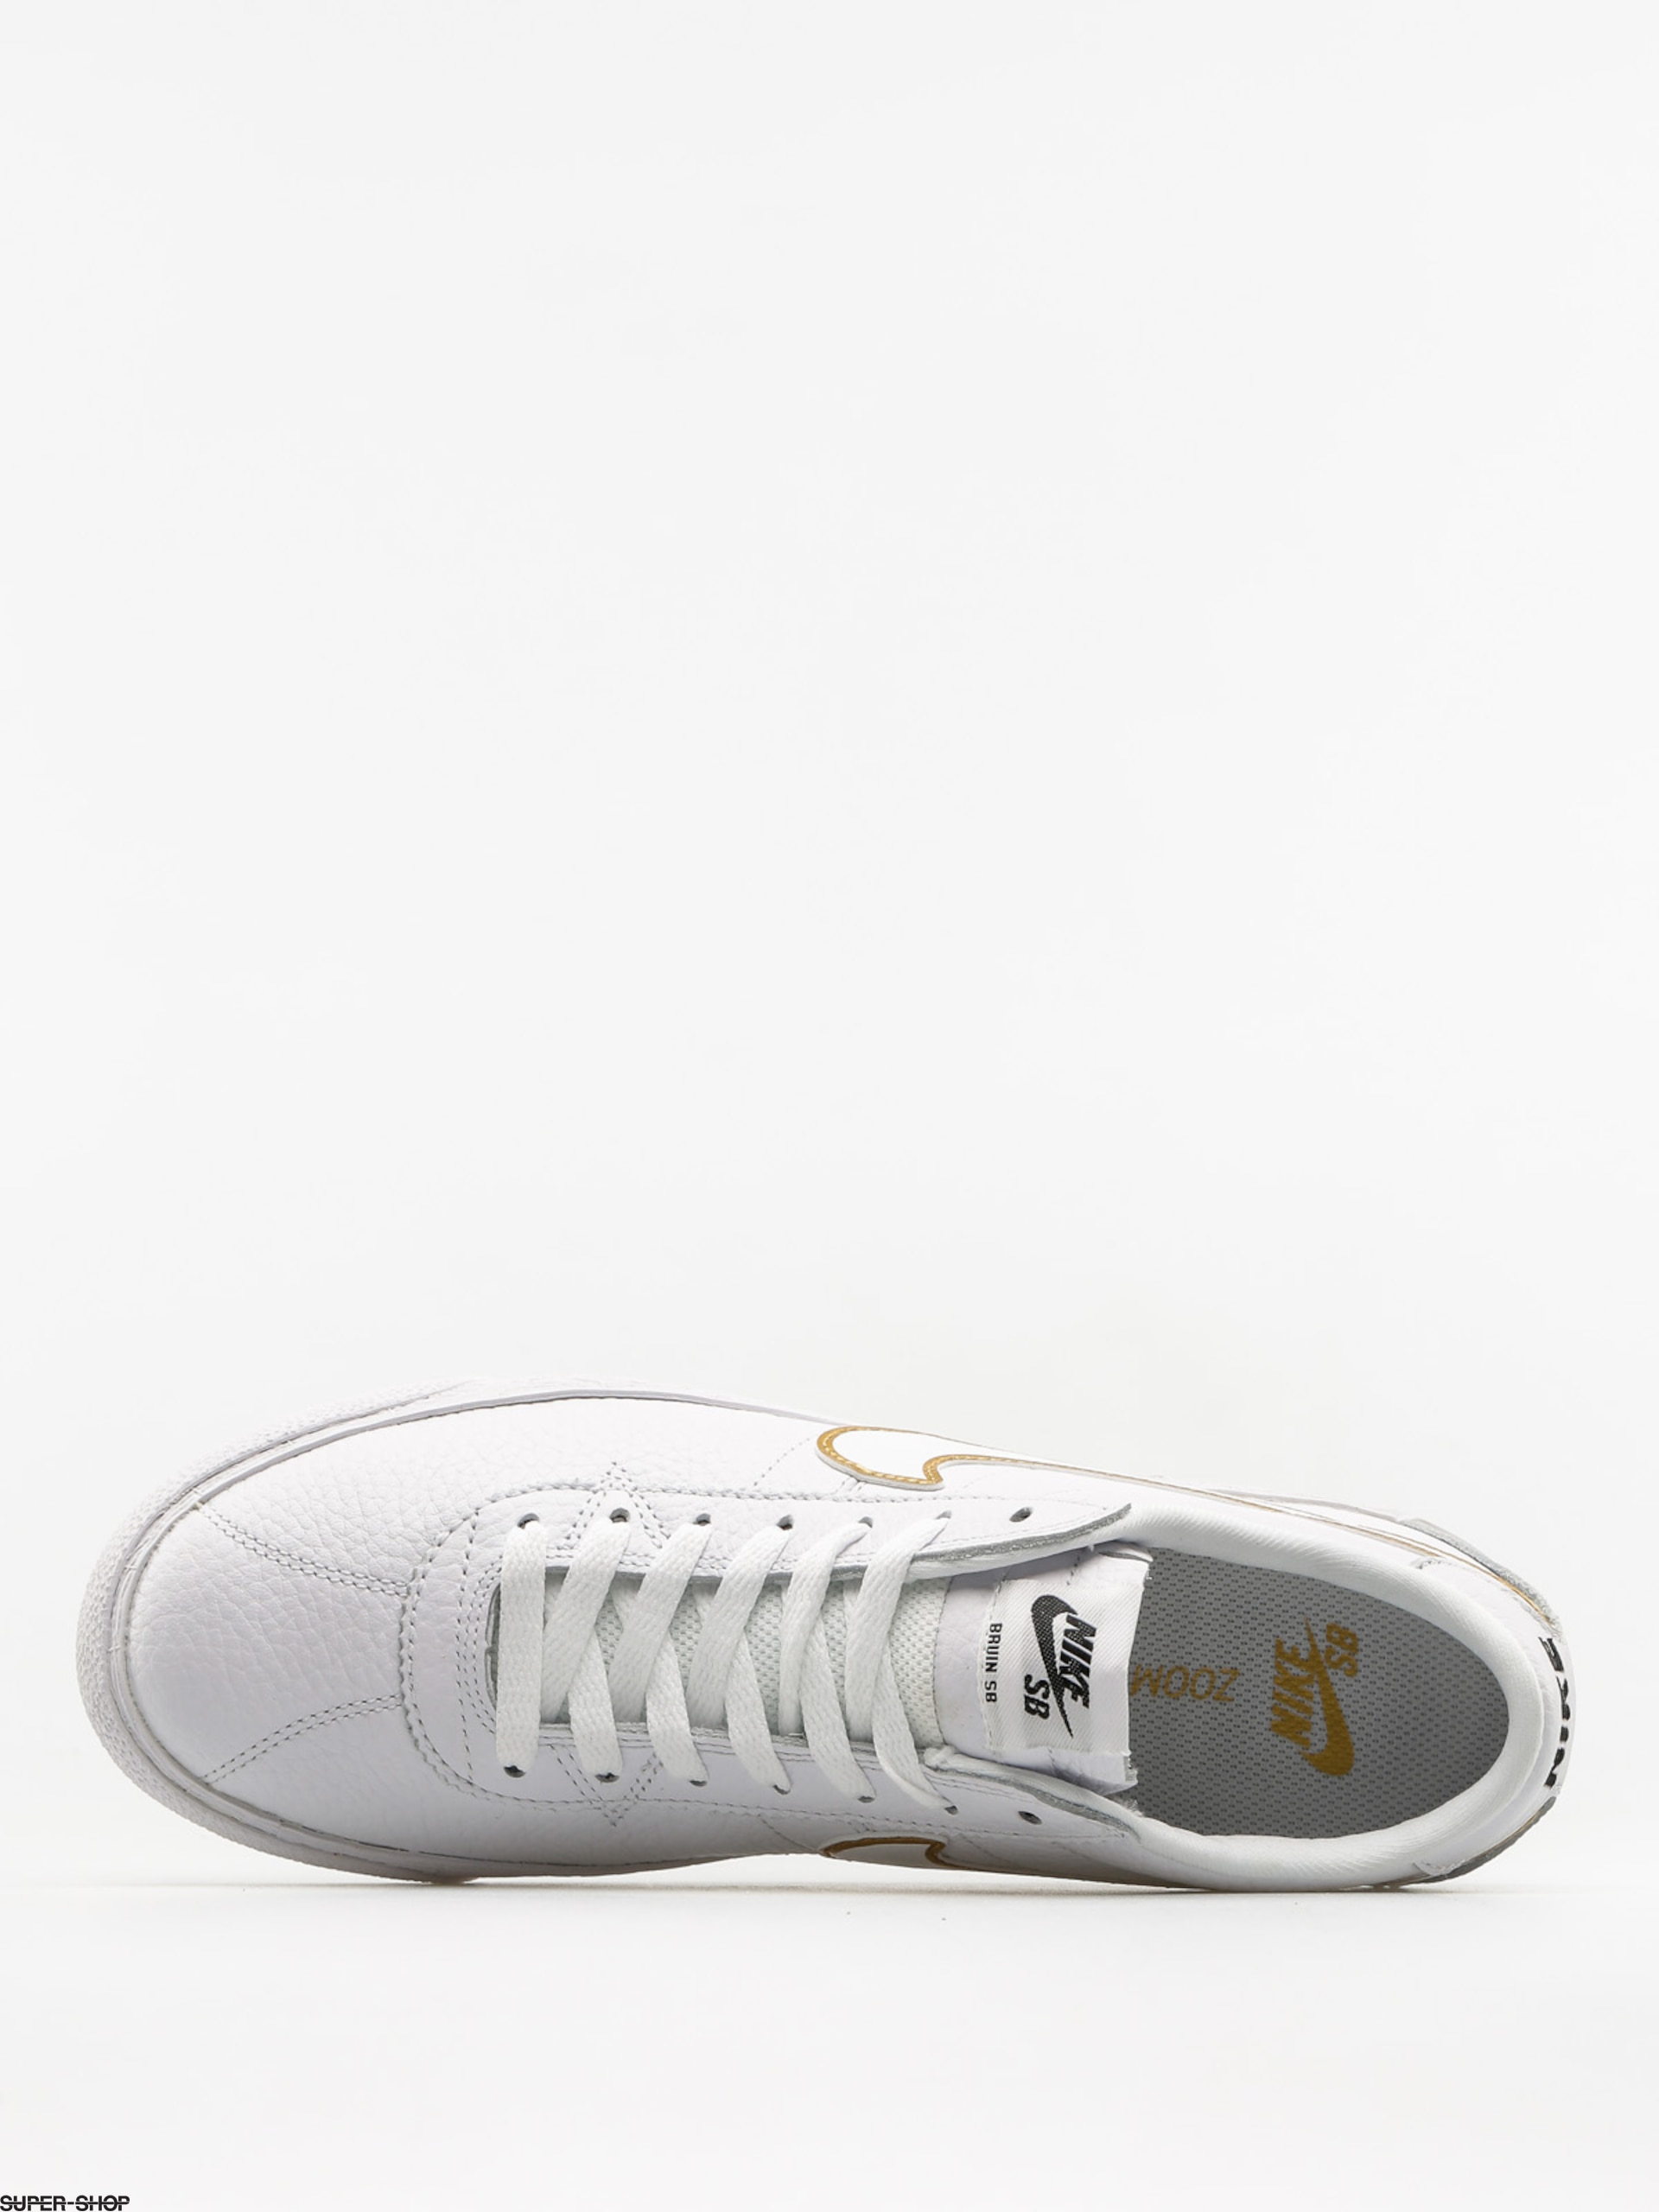 low priced af497 d9ea2 Nike SB Shoes Sb Zoom Bruin Premium Se (white white metallic gold black)